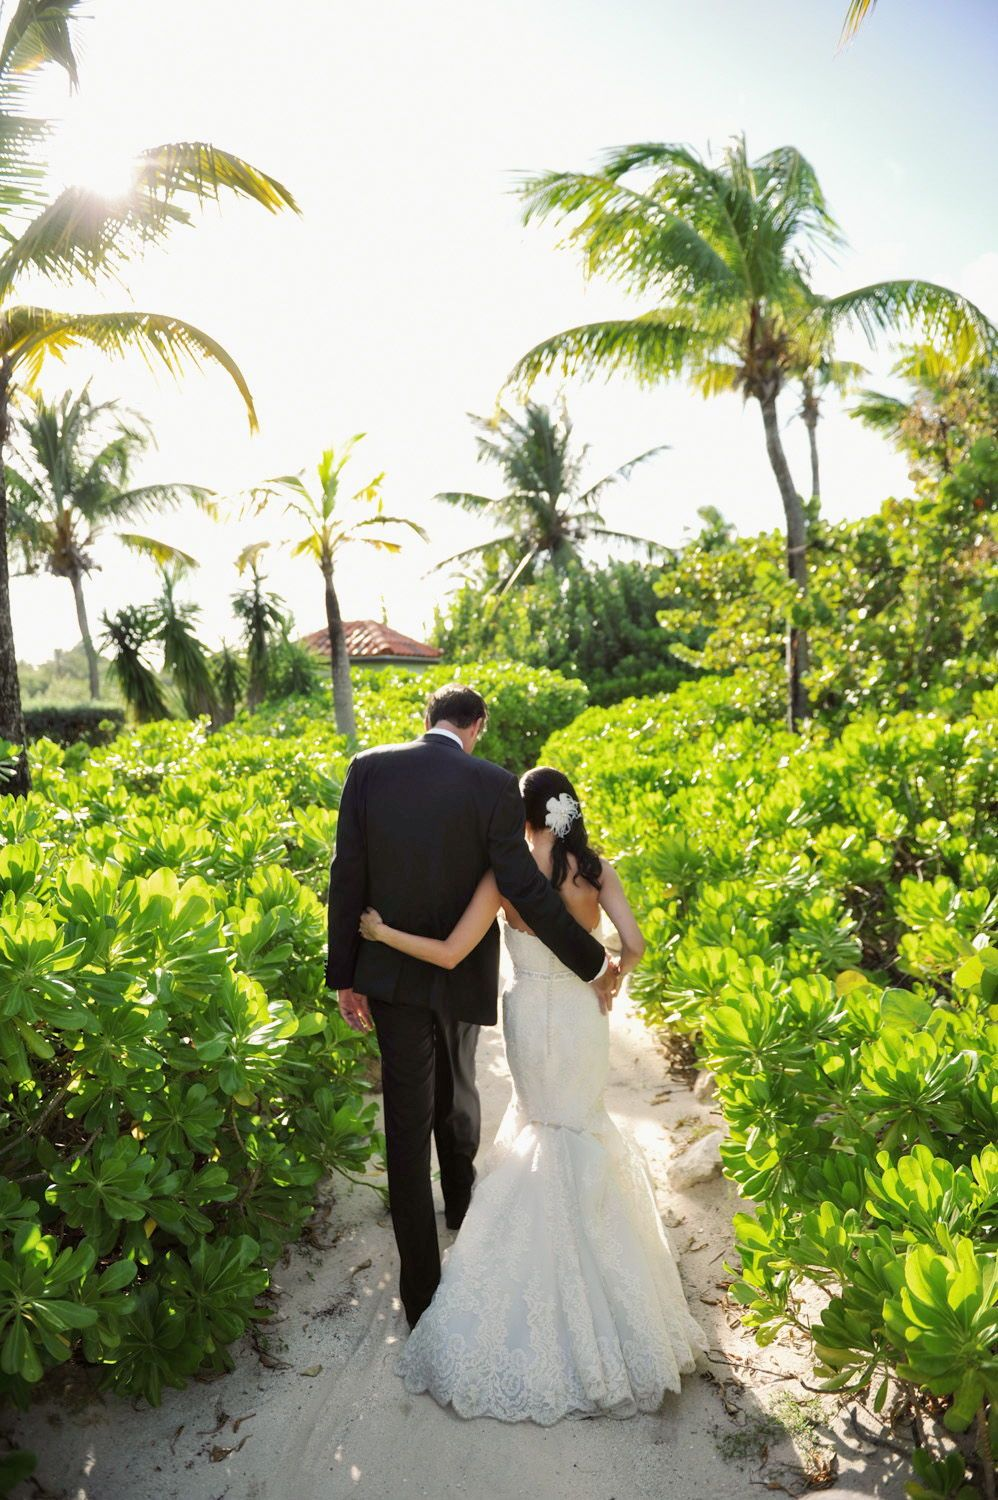 Caribbean wedding dress  Kathi u Joe  Destination wedding photographer